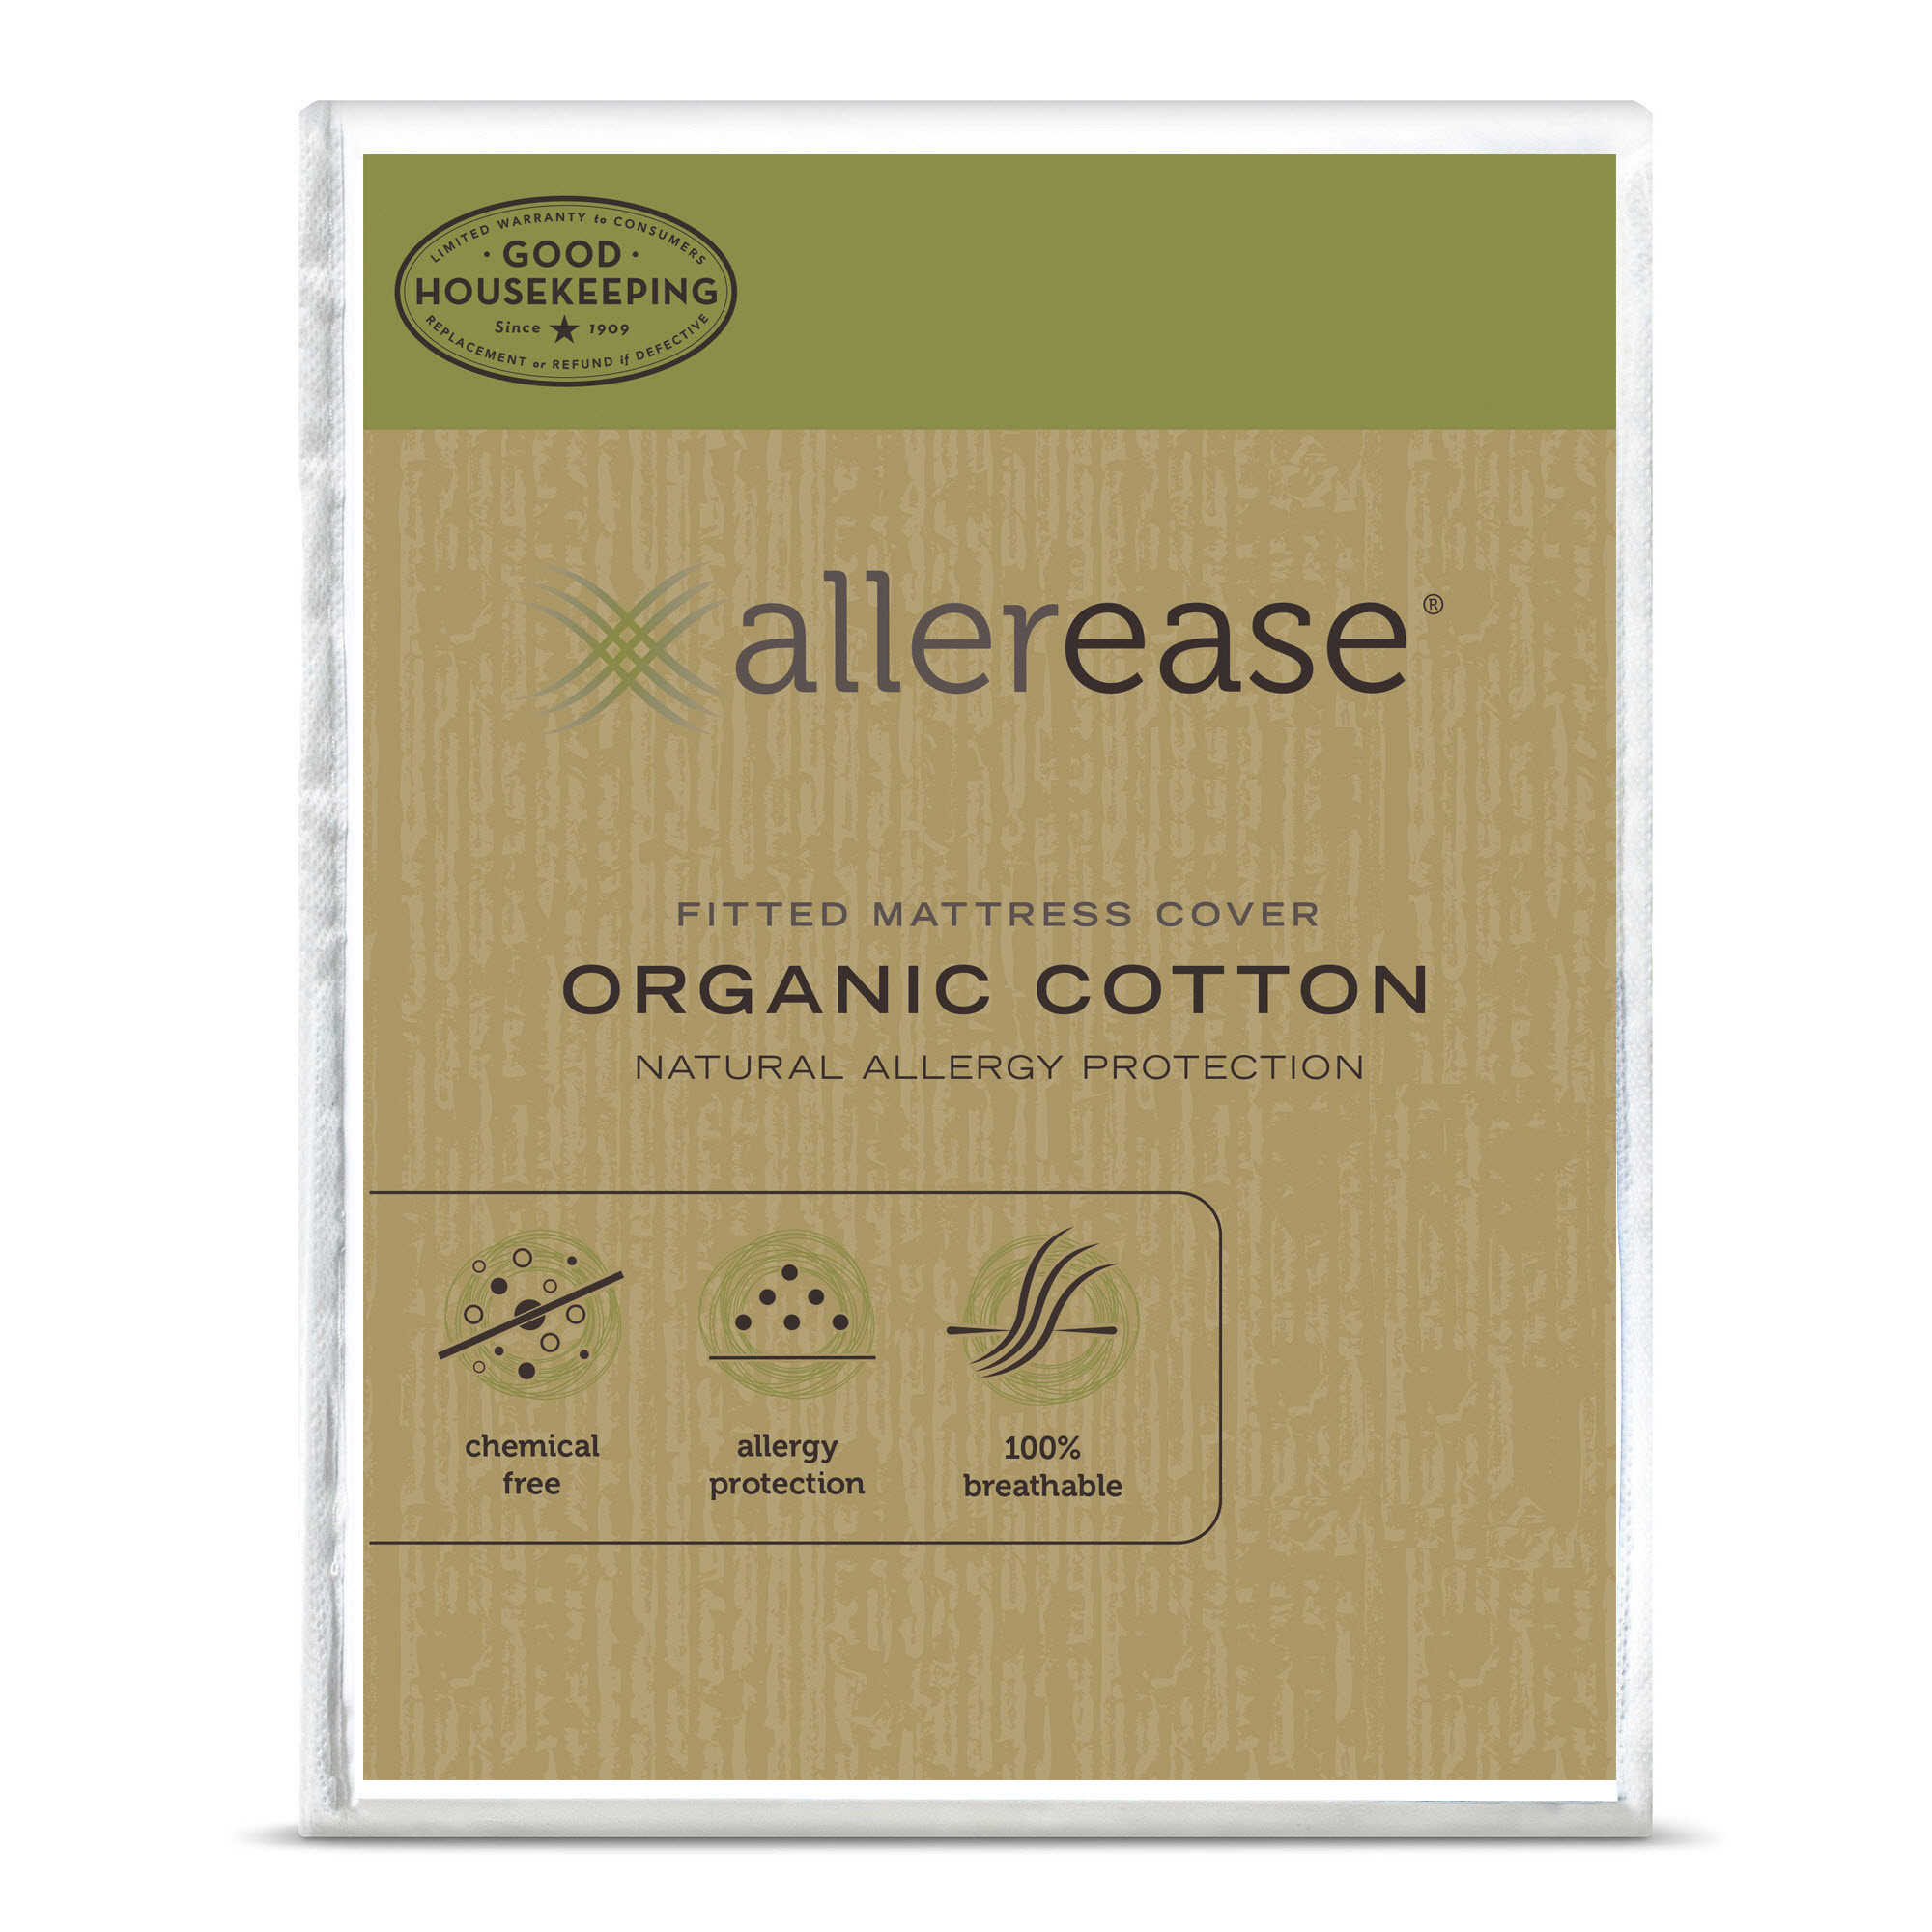 AllerEase Organic Cotton Cover Allergy Protection Mattress Cover, Twin - Walmart.com